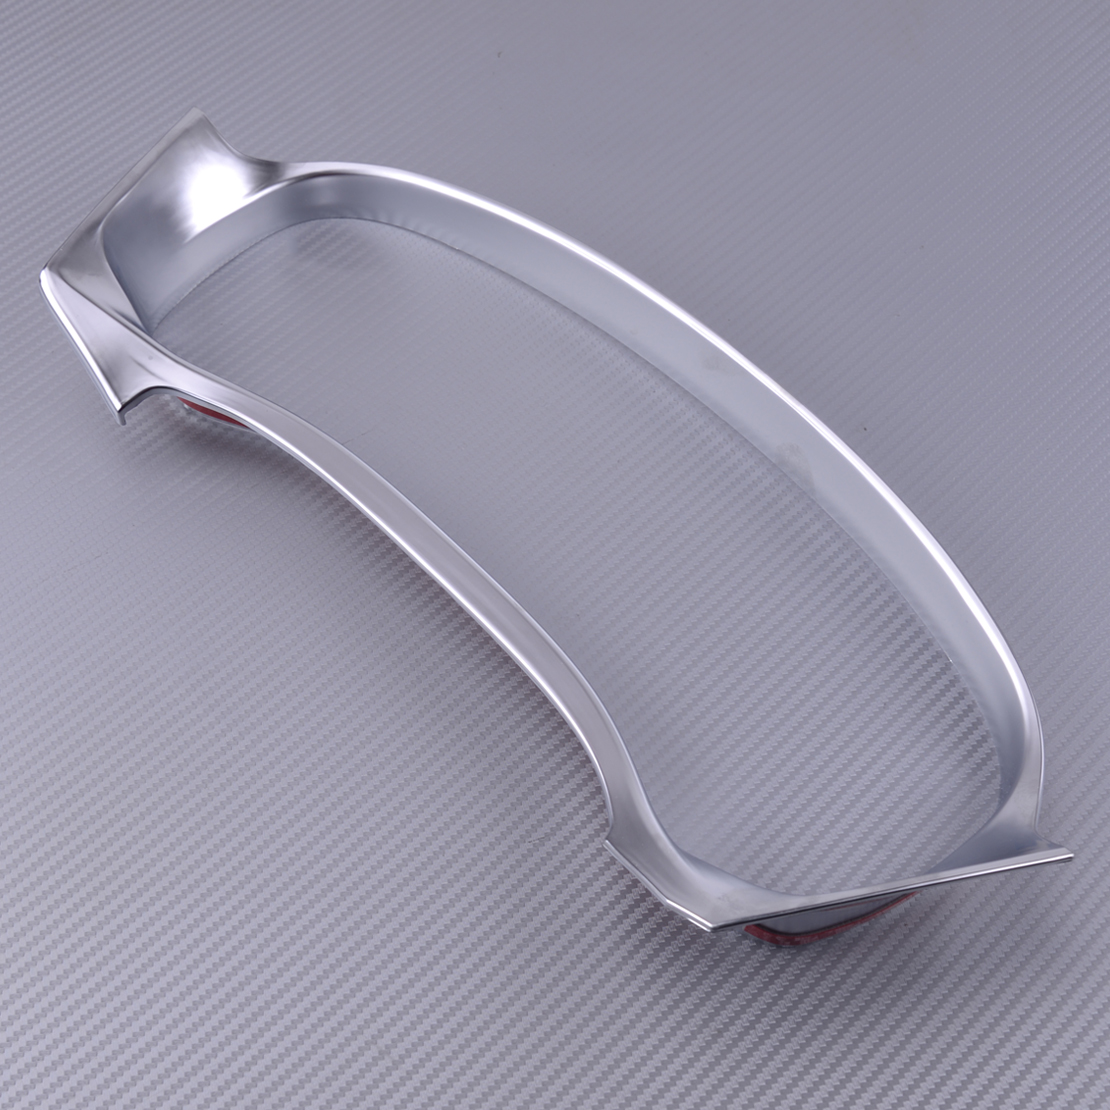 CITALL Car Dashboard Cover Decor Frame Trim ABS Chrome Fit for <font><b>BMW</b></font> <font><b>X3</b></font> <font><b>G01</b></font> <font><b>2018</b></font> image